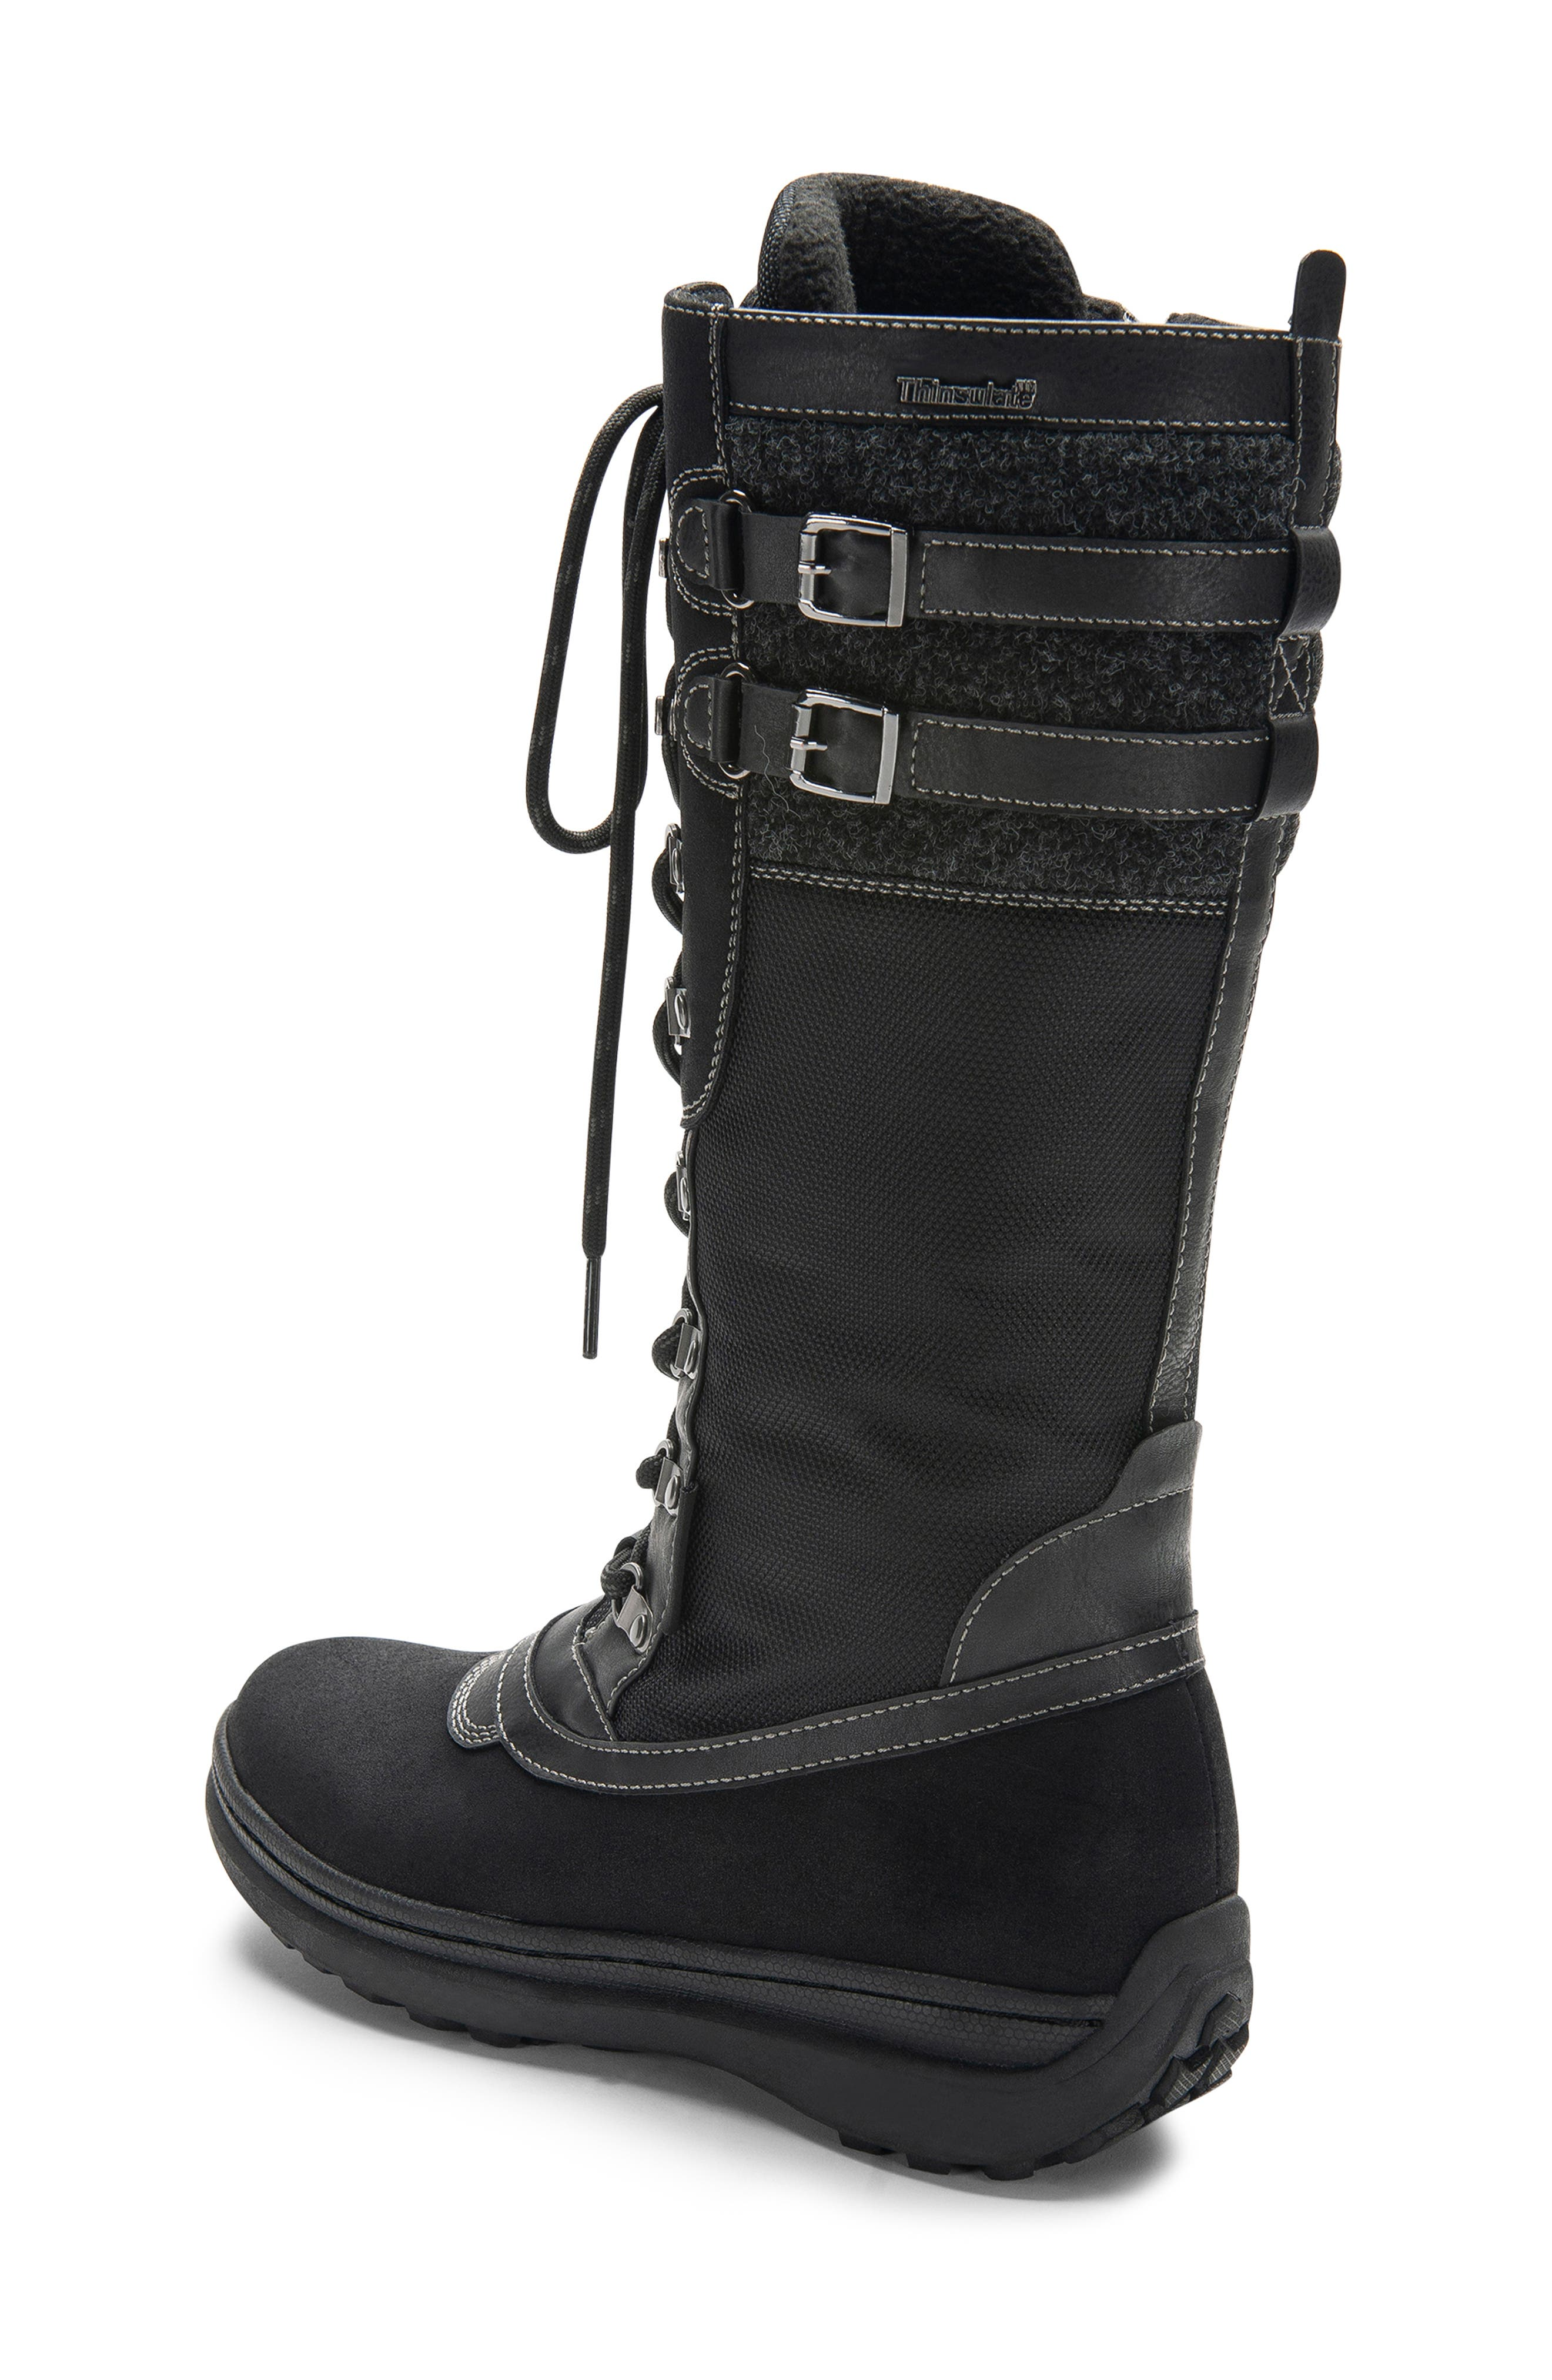 India Waterproof Snow Boot,                             Alternate thumbnail 9, color,                             BLACK LEATHER